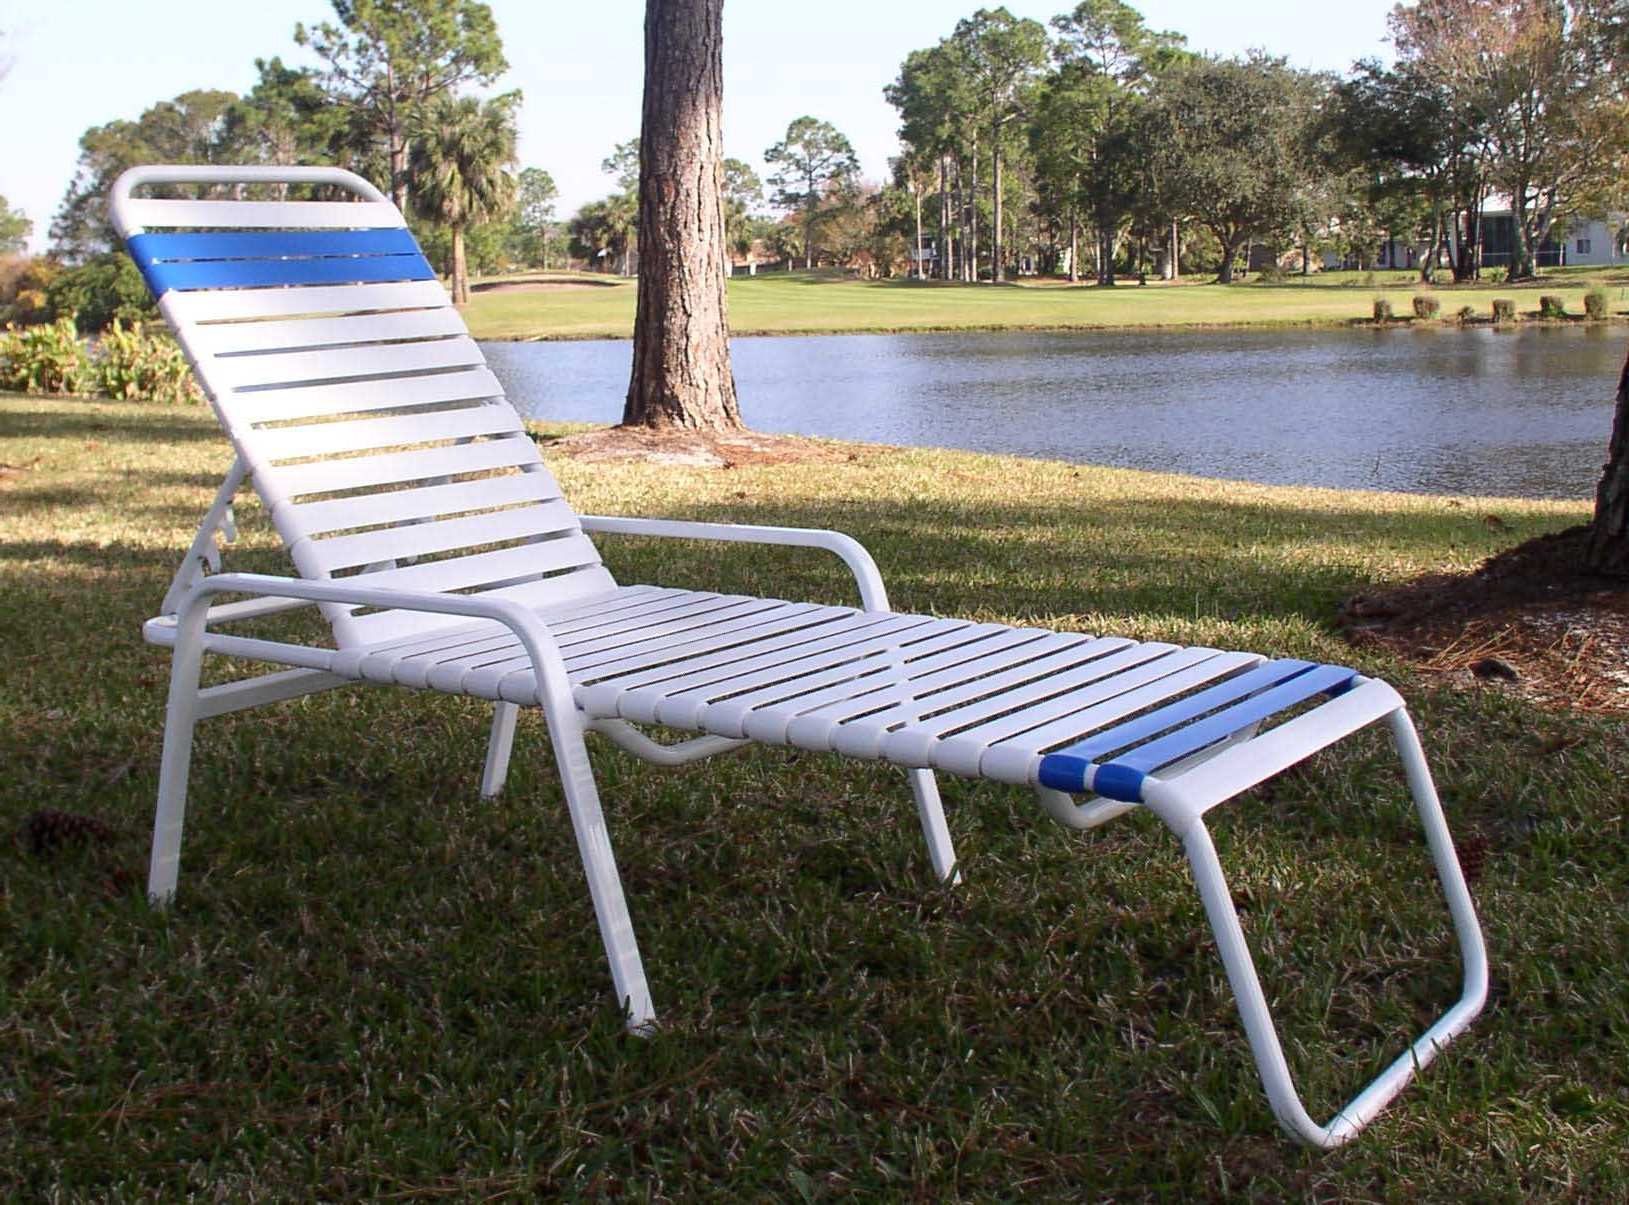 Vinyl Restrapping Your Atlanta Outdoor & Patio Furniture Throughout Most Up To Date Chaise Lounge Strap Chairs (View 10 of 15)